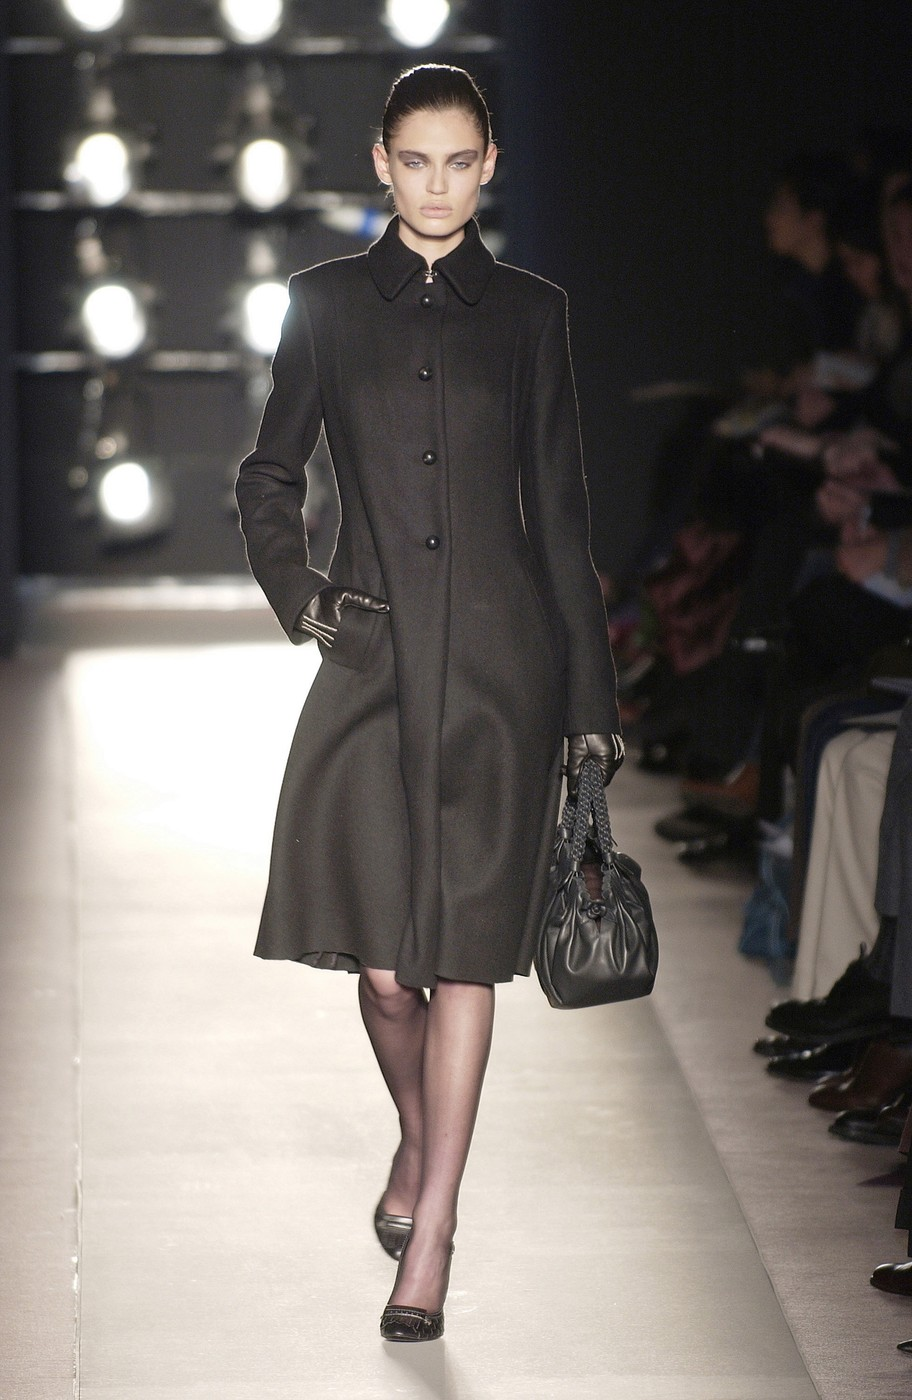 via fashioned by love | Bottega Veneta Fall/Winter 2005